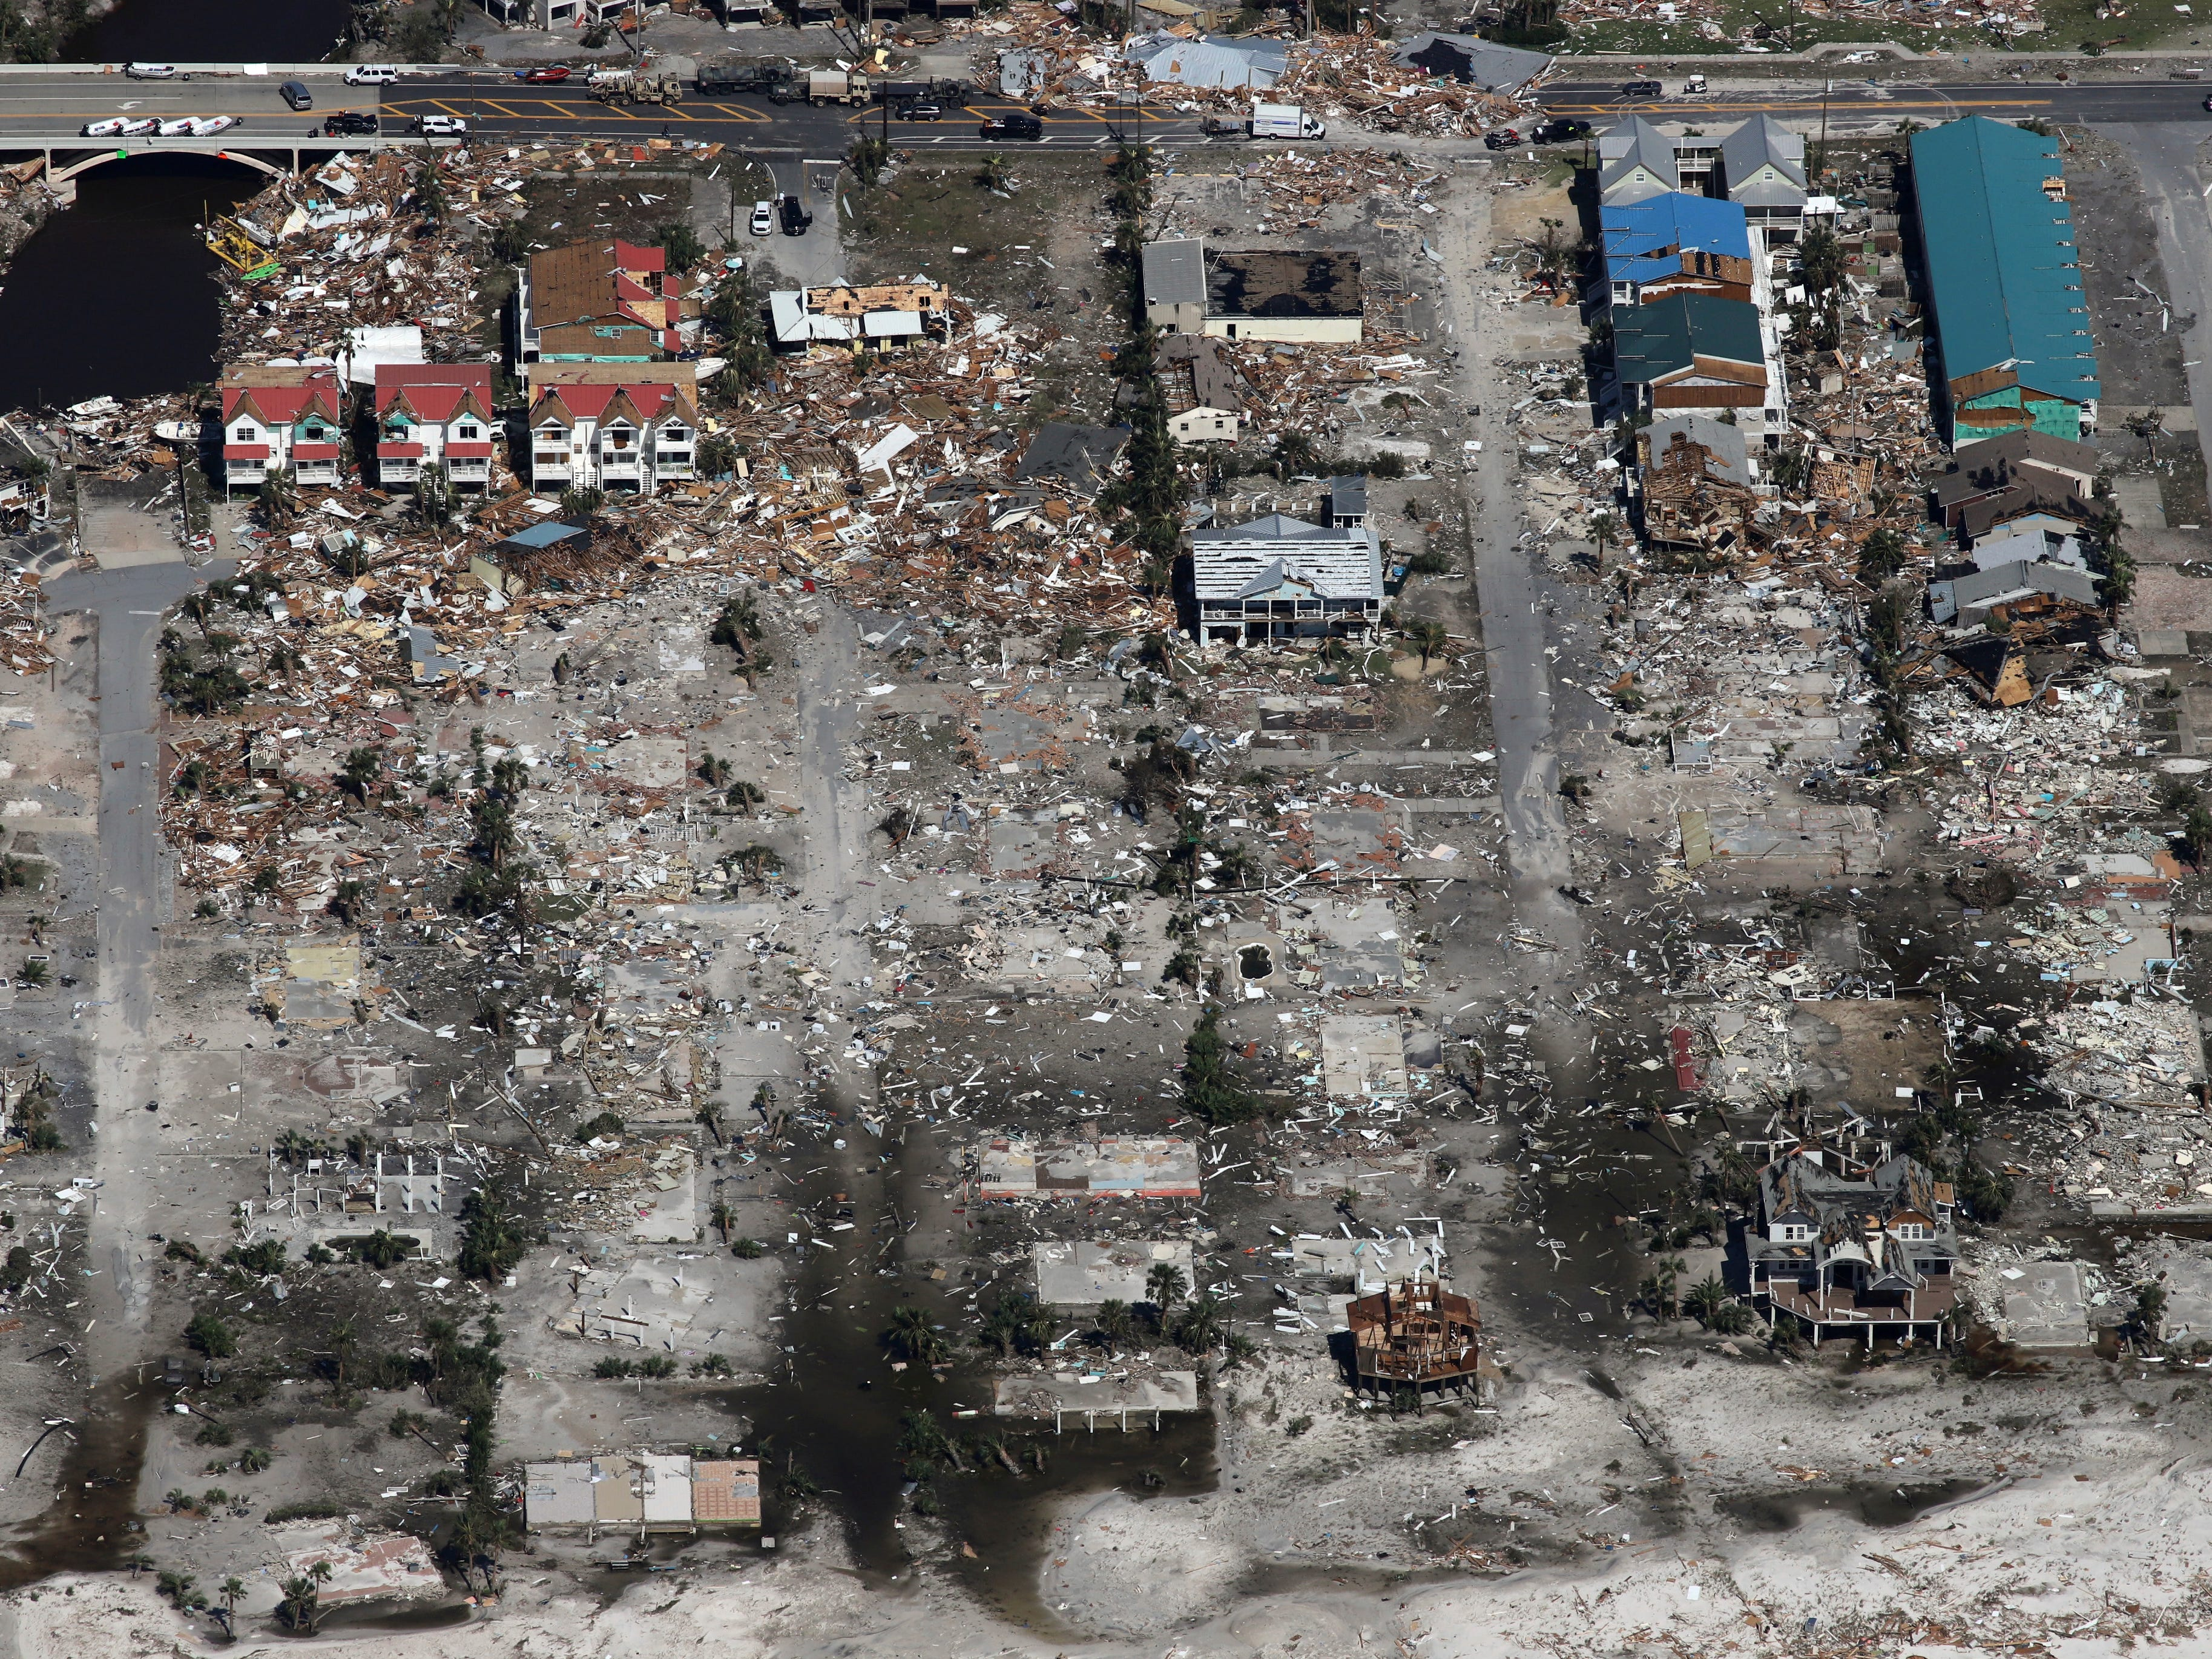 An entire neighborhood between 40th Street and 42nd Street in Mexico Beach, Fla. was wiped out by Hurricane Michael, Thursday, Oct. 11, 2018. The devastation inflicted by Hurricane Michael came into focus Thursday with rows upon rows of homes found smashed to pieces, and rescue crews began making their way into the stricken areas in hopes of accounting for hundreds of people who may have stayed behind. (Michael Snyder/Northwest Florida Daily News via AP)